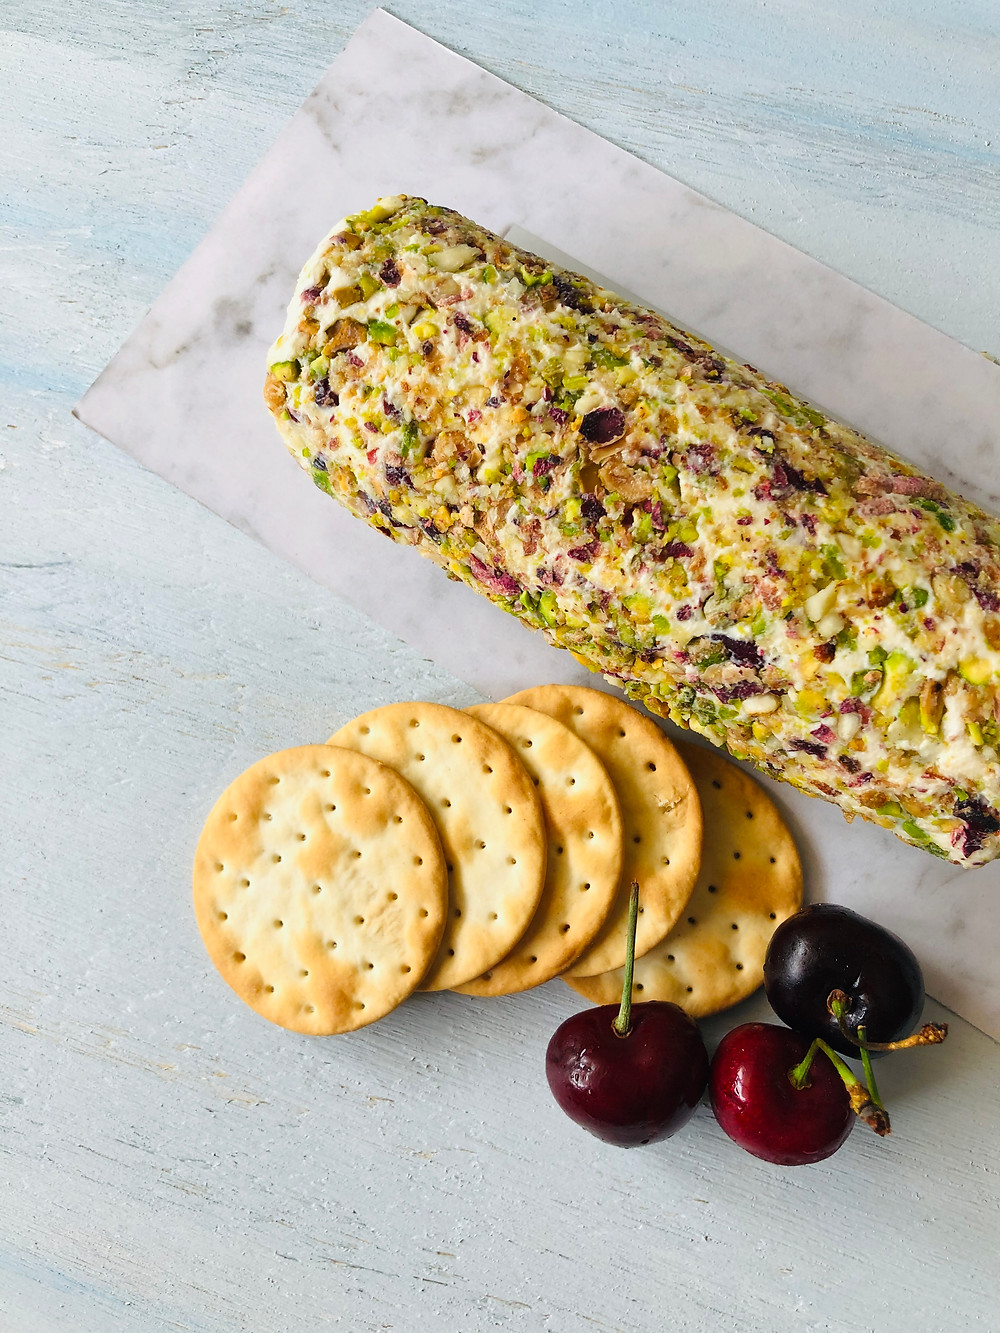 Philadelphia cream cheese log with dried cranberries and pistachios, crackers and cherries